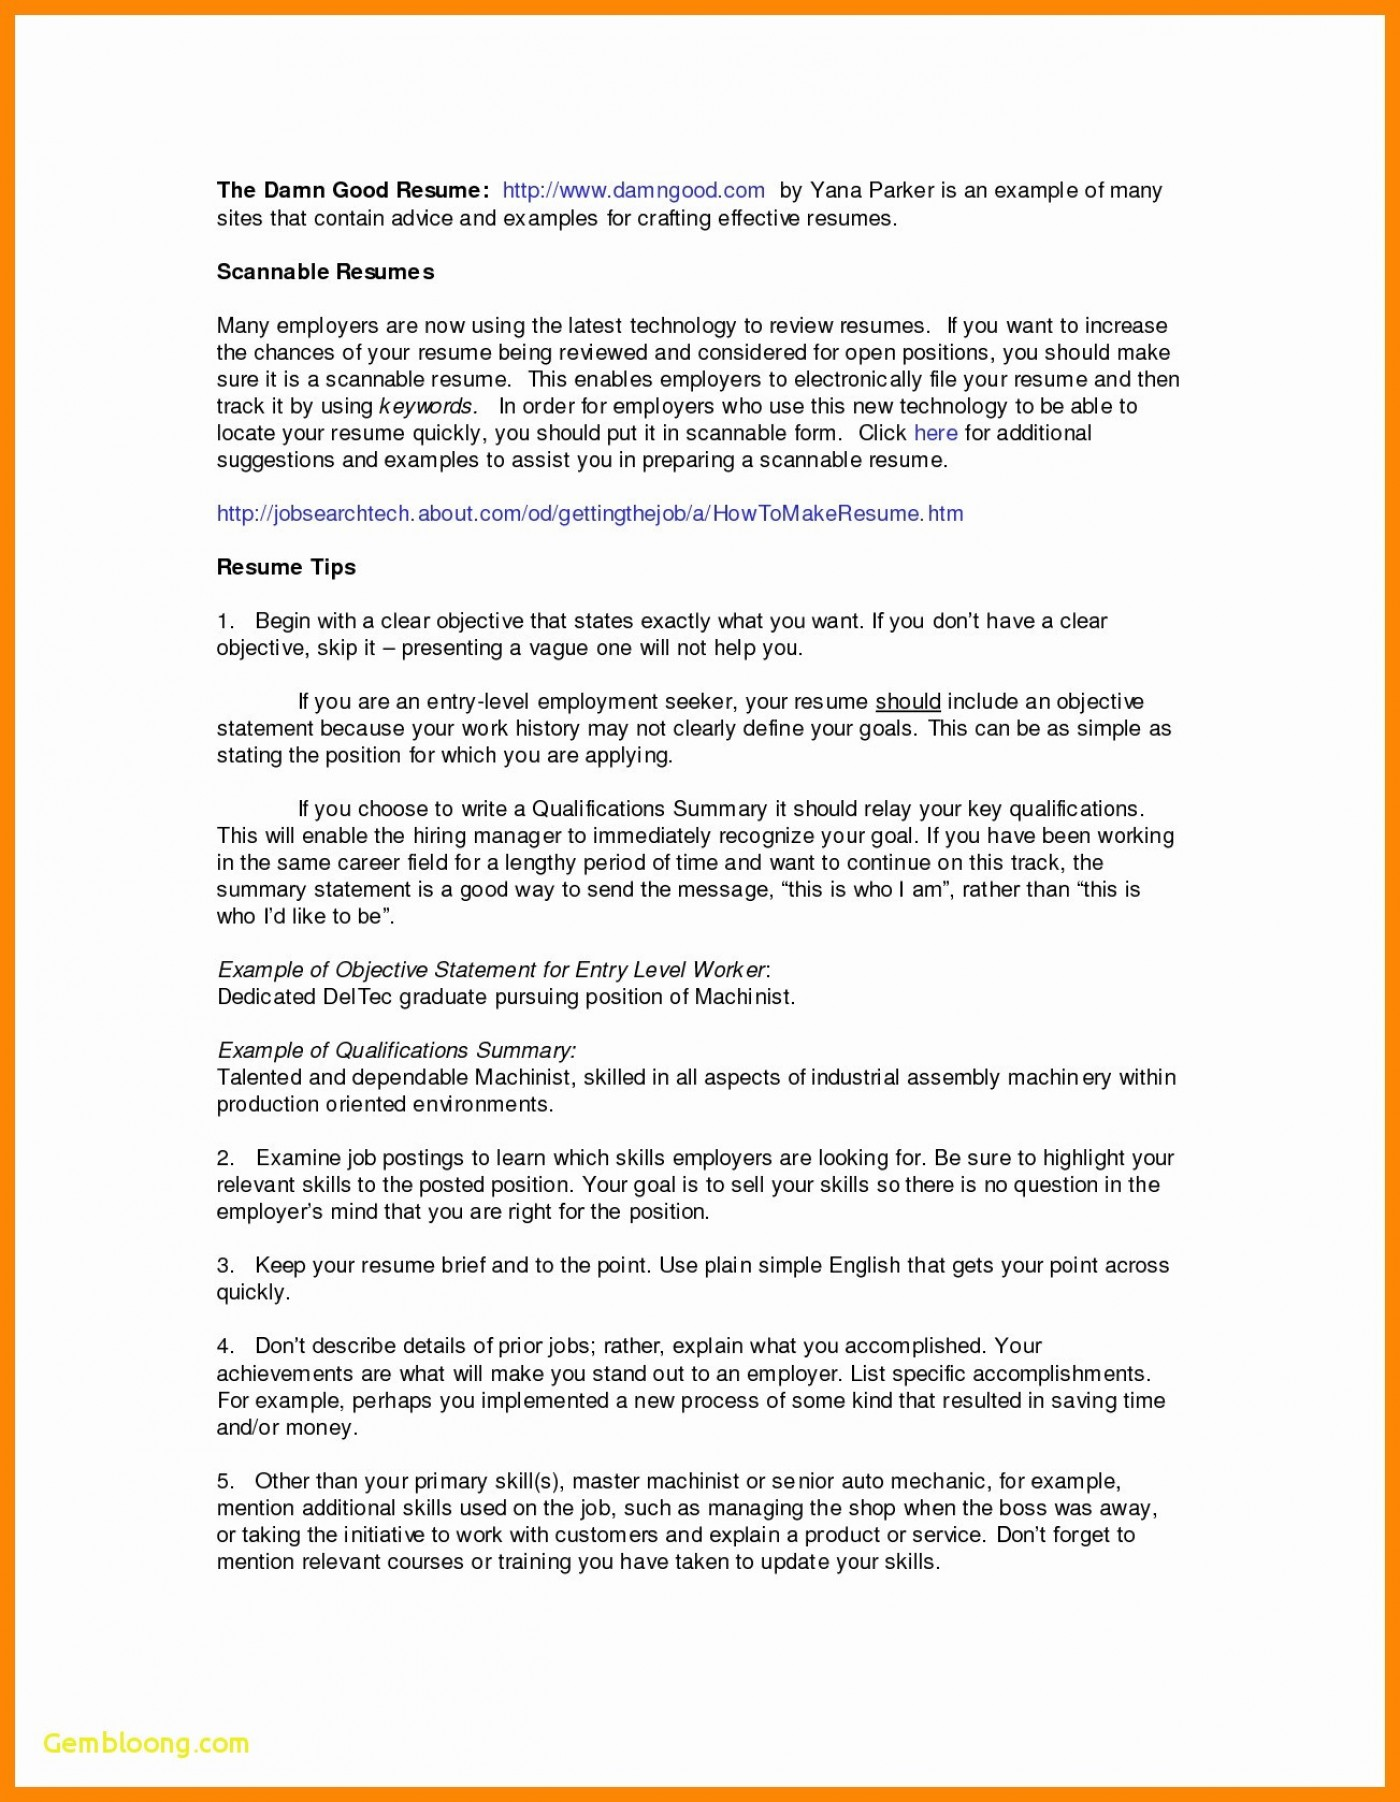 023 Research Paper Page New Resume Summary Examples Entry Level Inspirational Ceo Pay Of For Stupendous Papers Gap Performance Why Do You Have To 1400